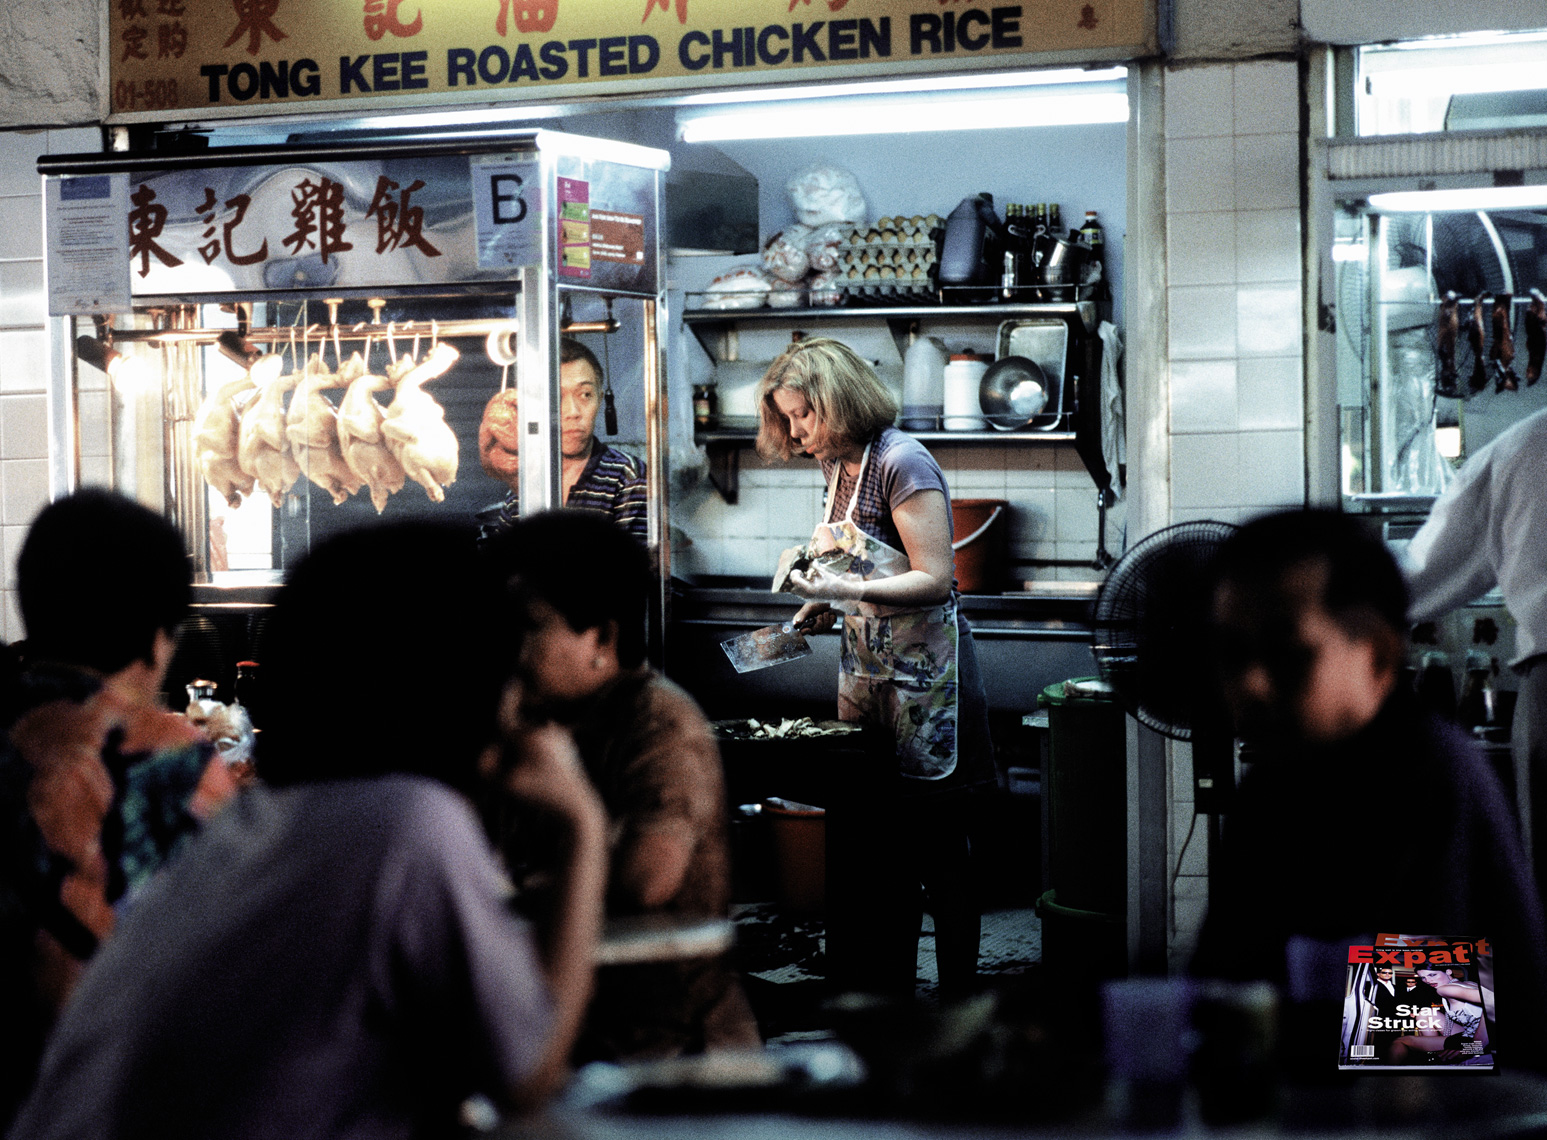 Chicken Rice Lady